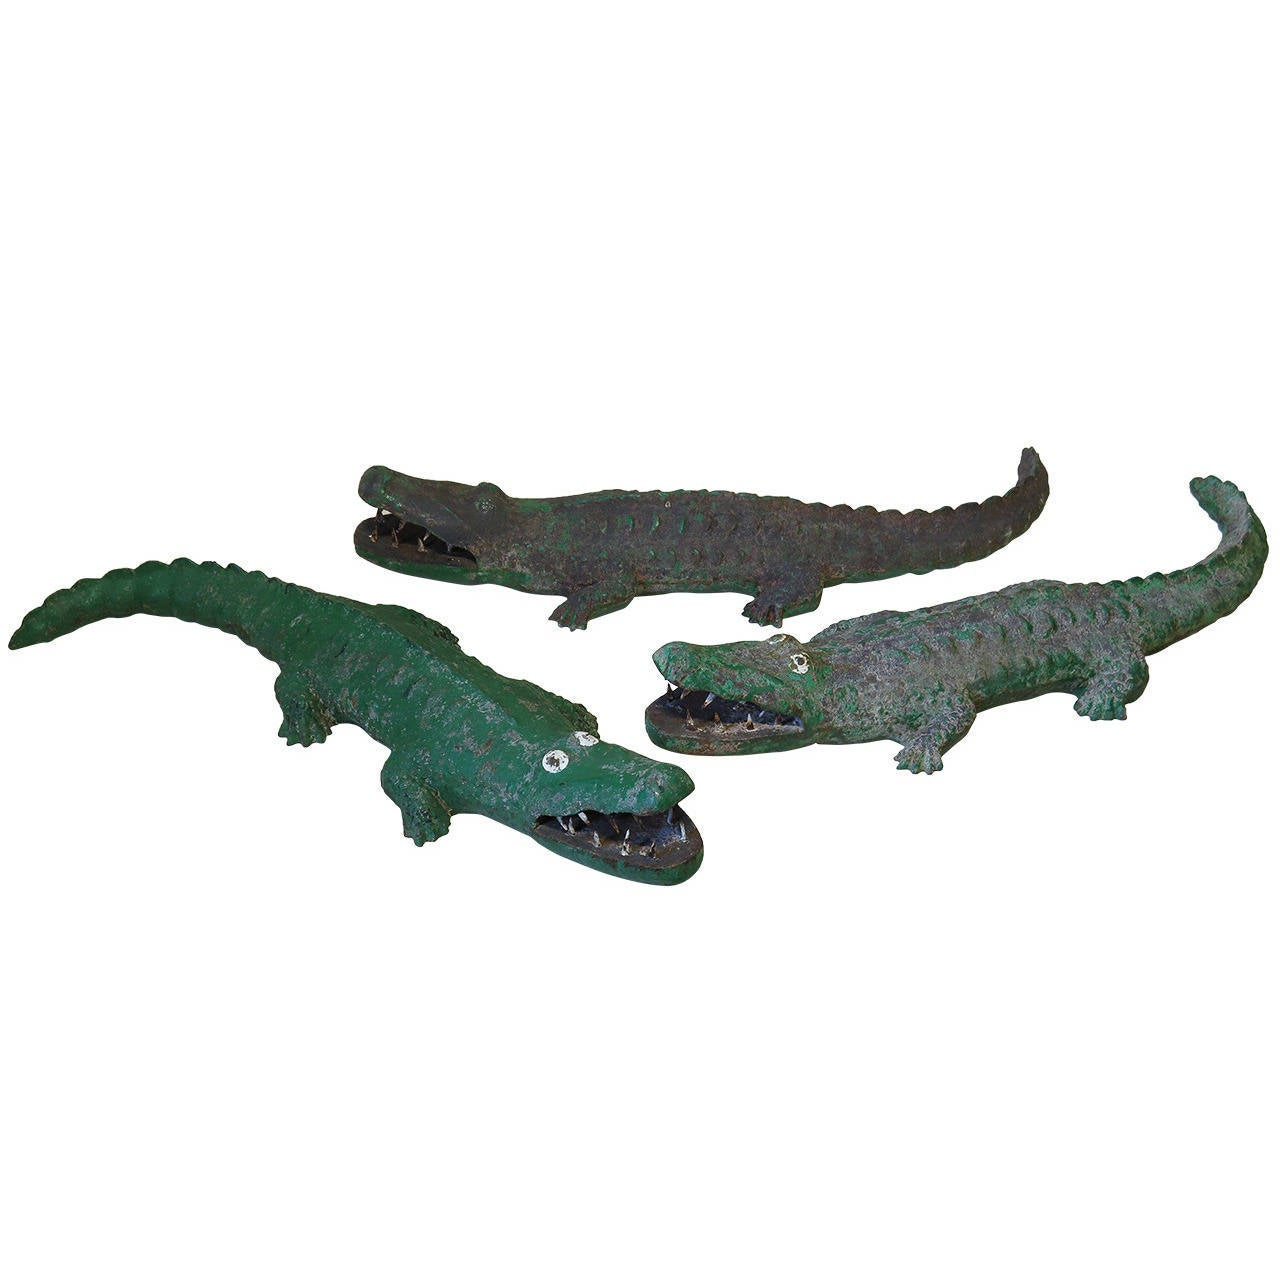 Three Large Painted Cast Iron Crocodiles Sculptures, France, 1950s